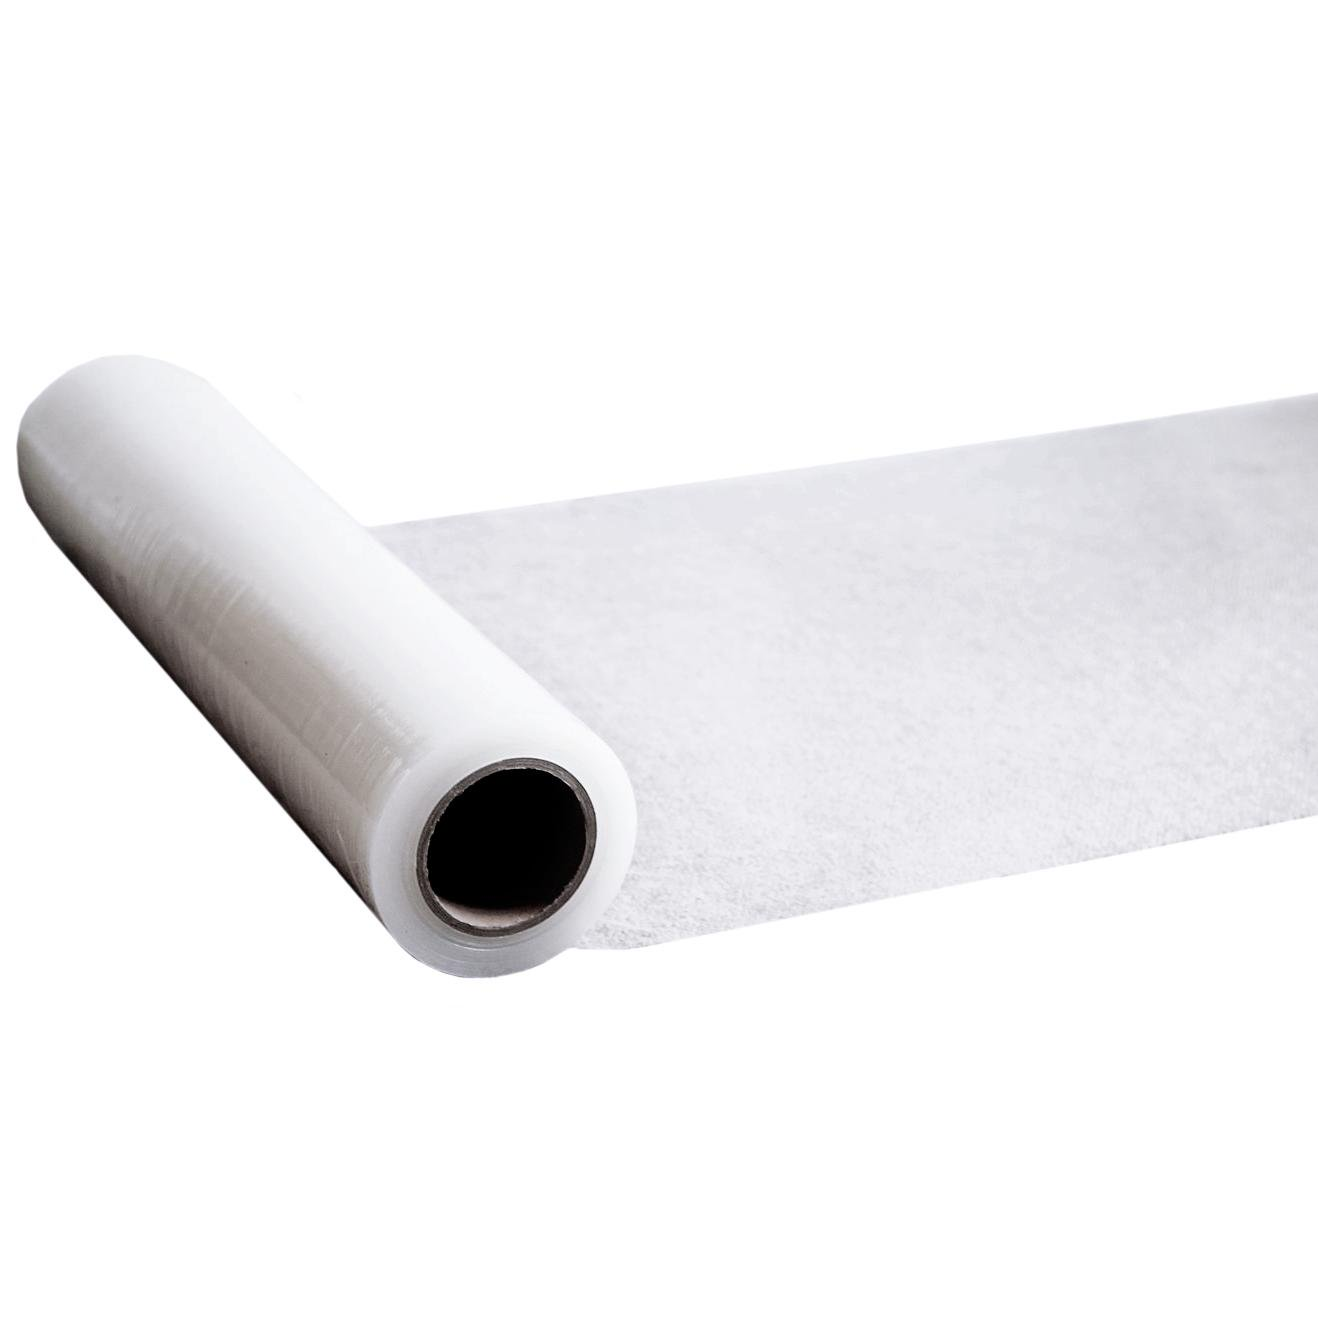 Protecta Carpet Clear 600mm x 25M (60MU) - Home - DIY